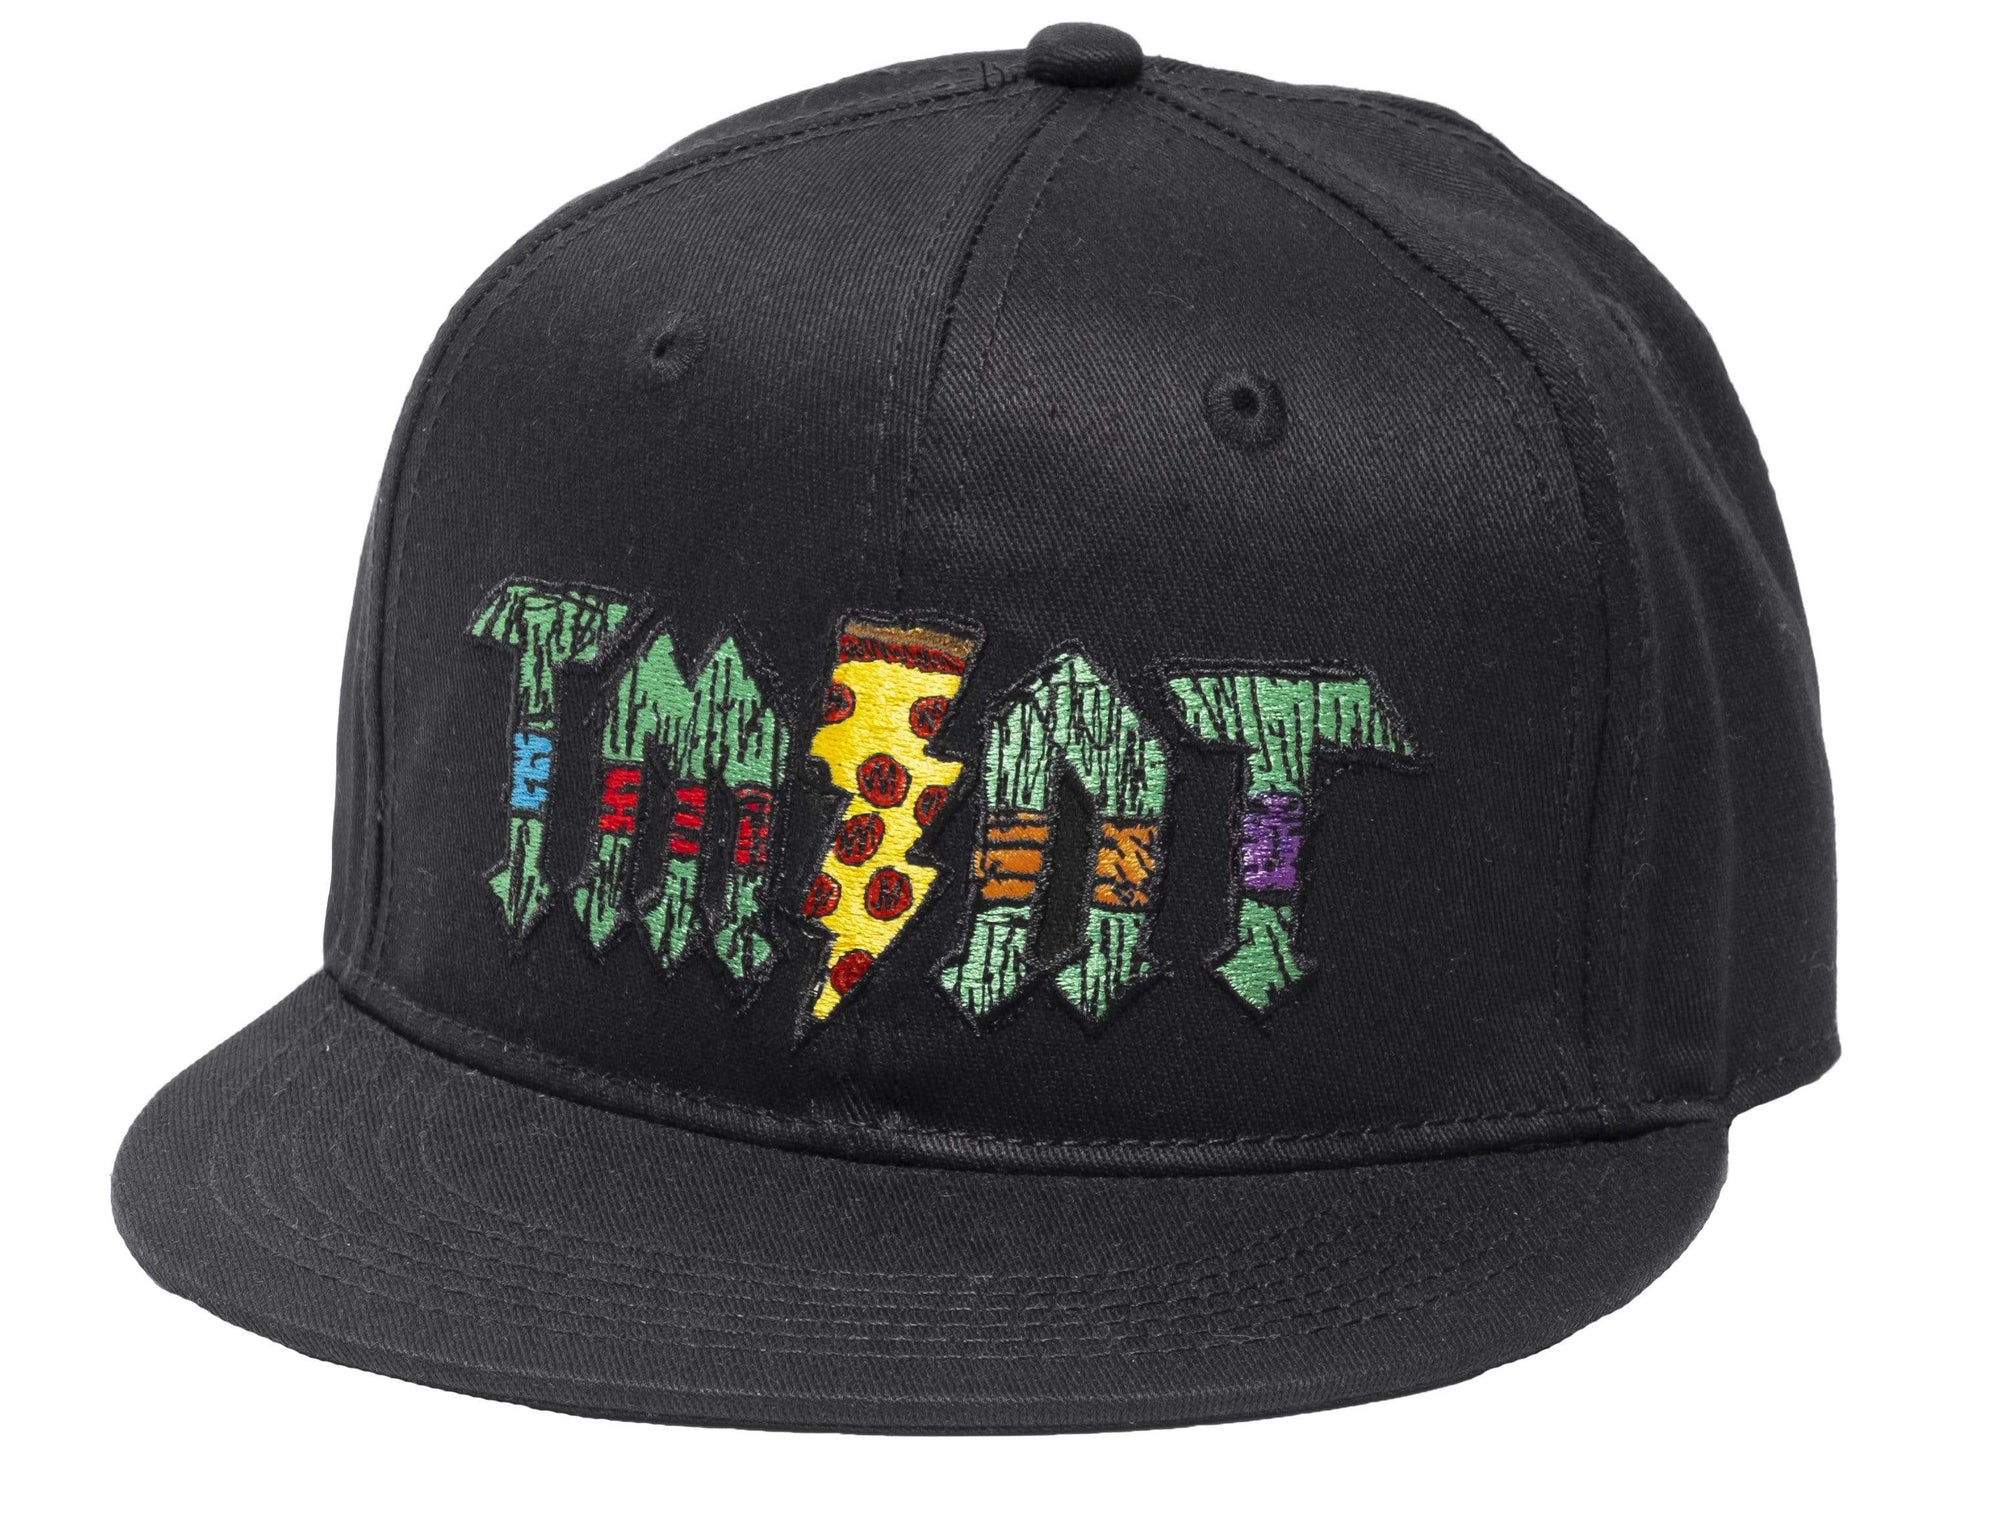 Band of boys Caps BOB X TMNT Cap - Black